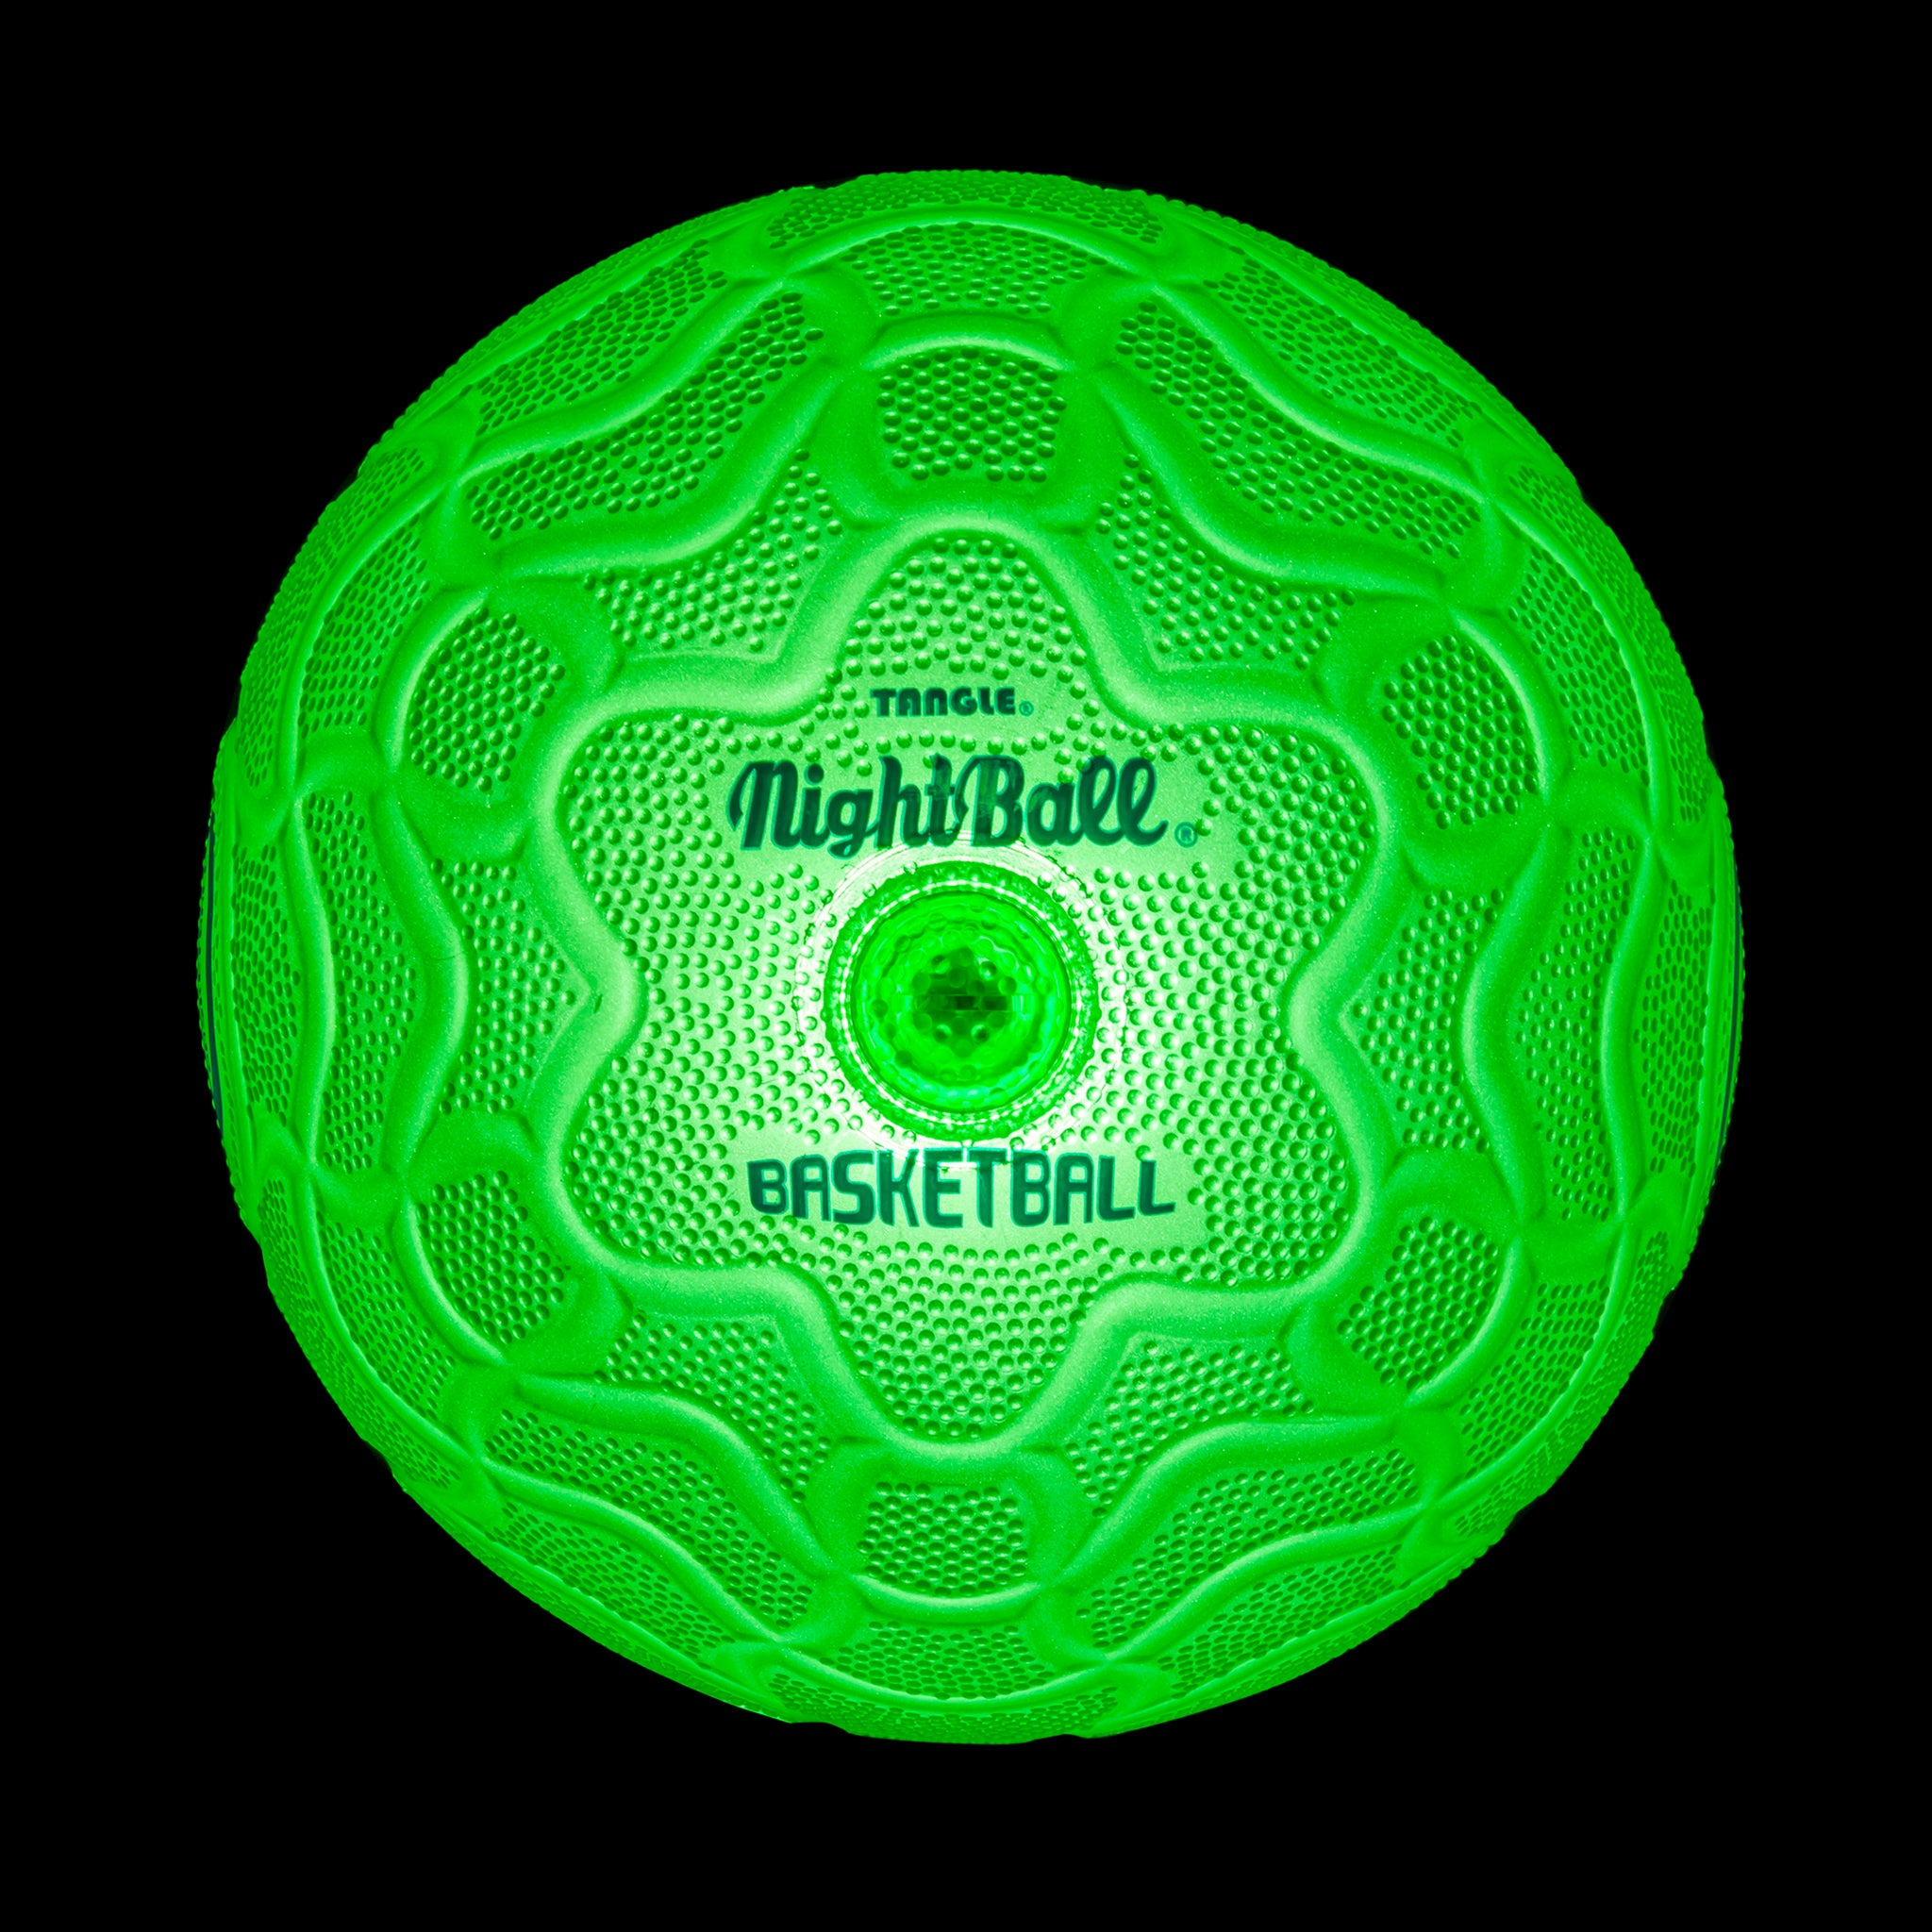 Tangle NightBall Basketball - LED Light Up Glow Basketball!